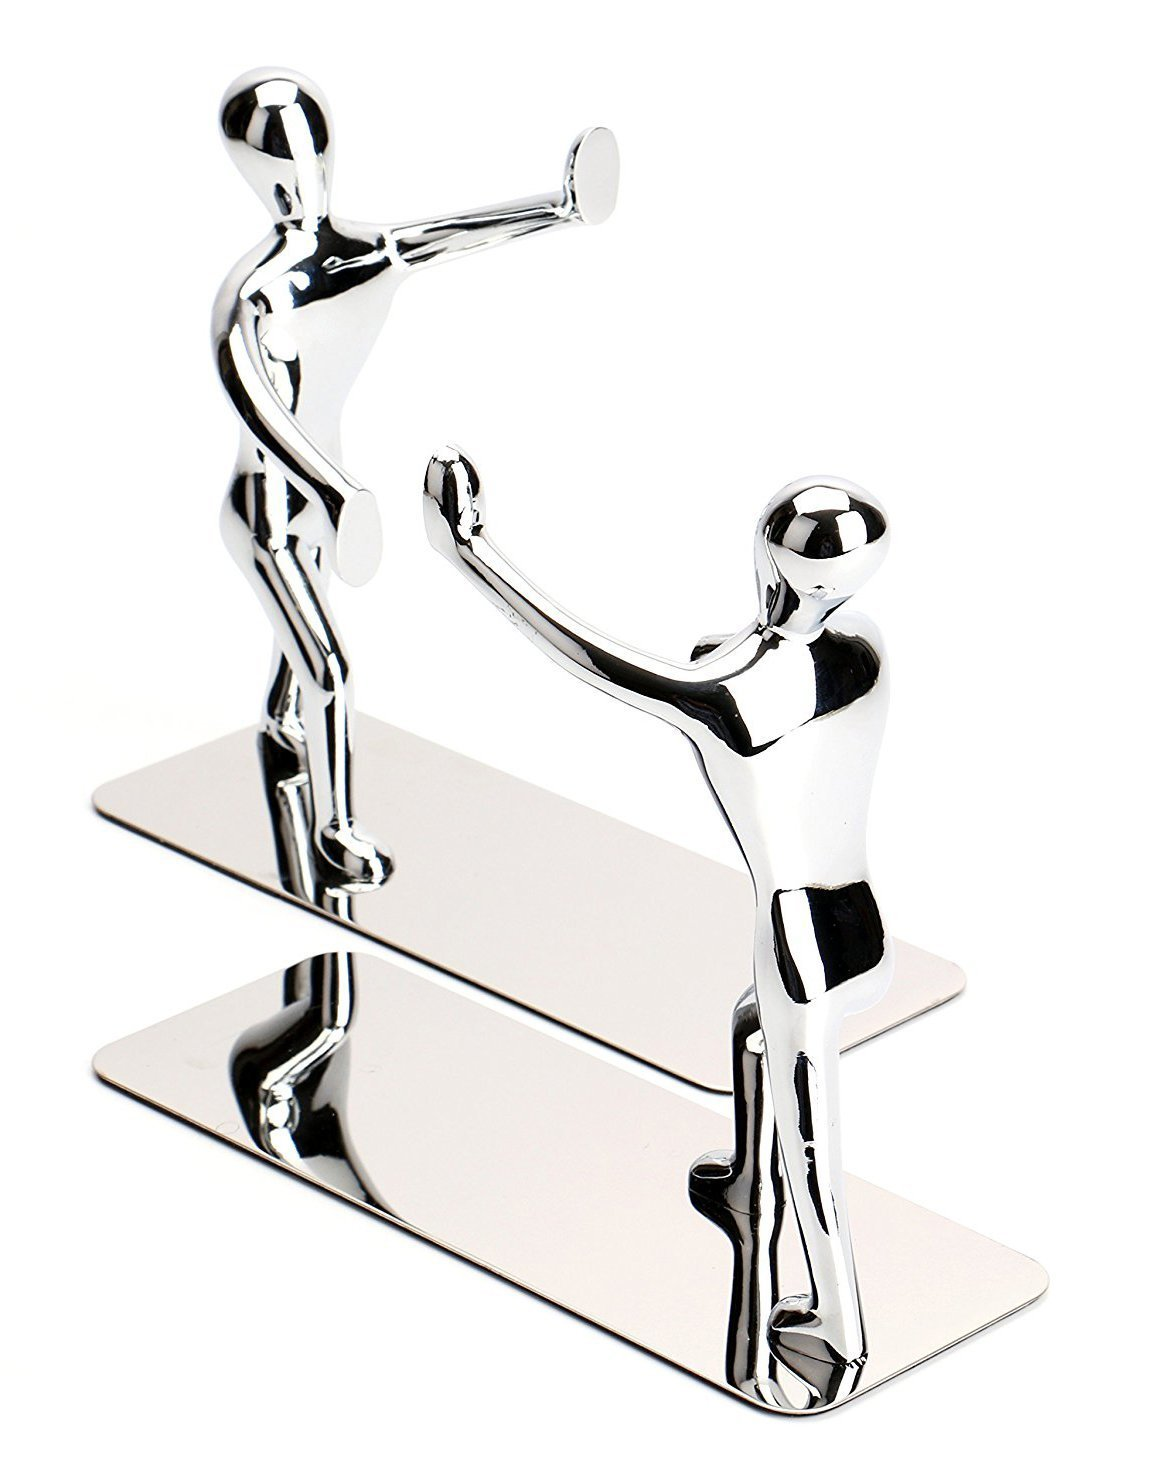 Fasmov Heavy Duty Stainless Steel Man bookends Nonskid Bookends Art Bookend,1 Pair by Fasmov (Image #3)